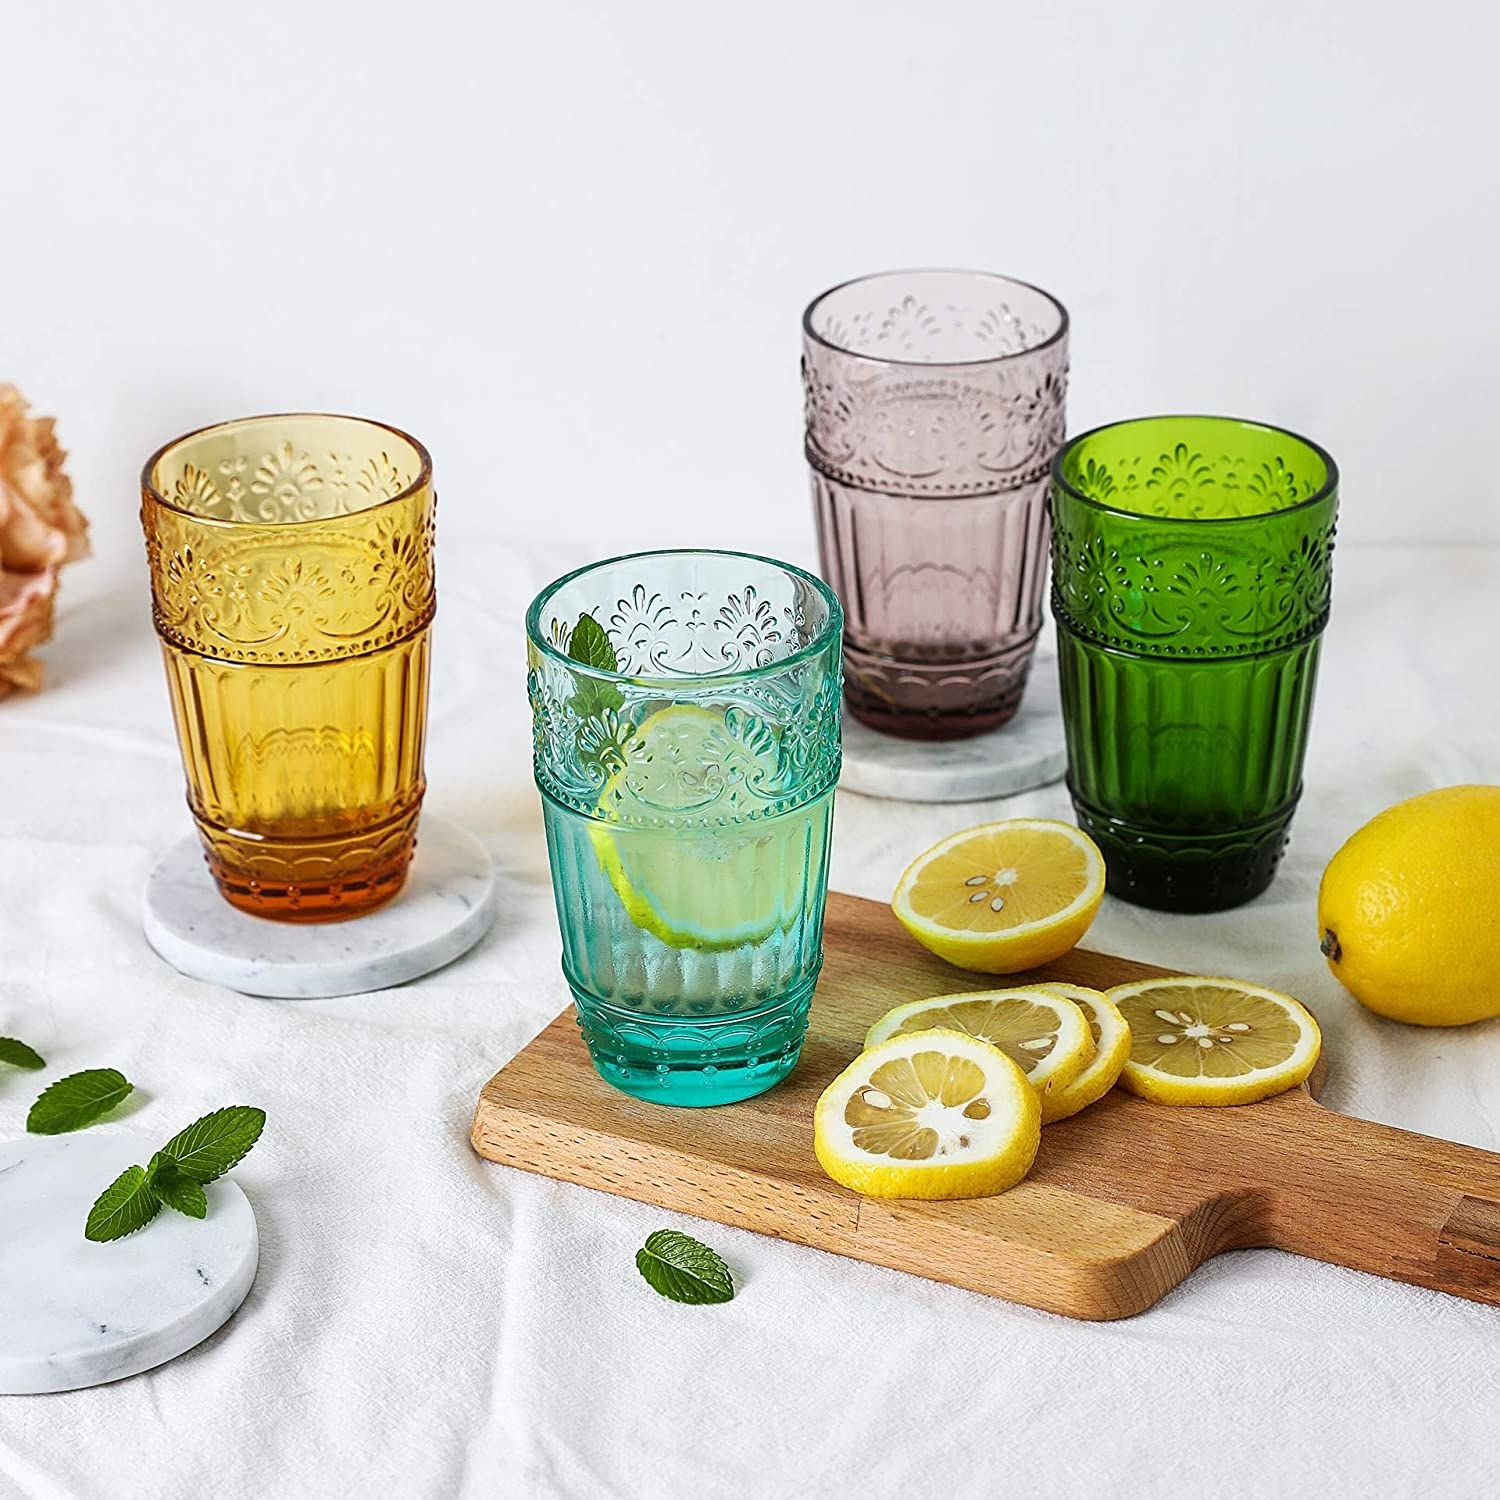 Four glasses in different colors, each printed with embossed moulding design and rivets for an easy grip